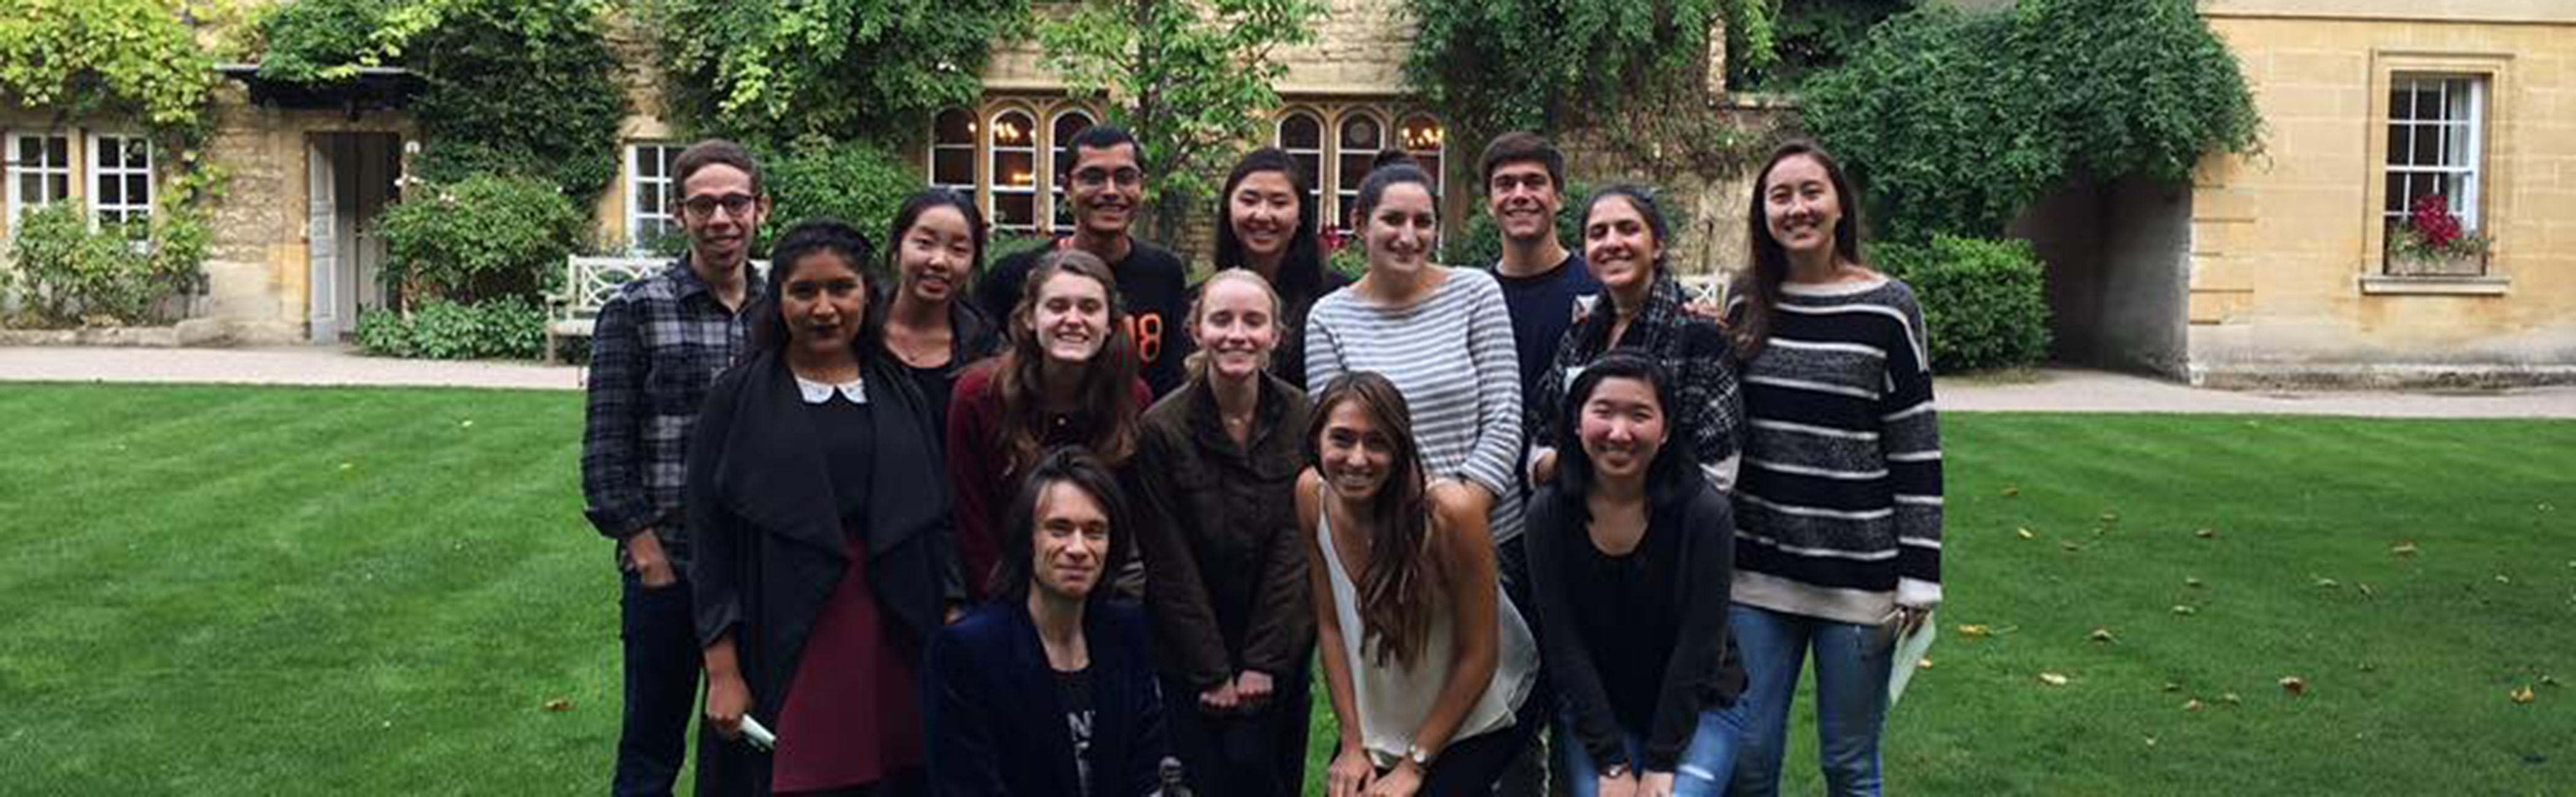 Study Abroad Programs - students at Oxford, England